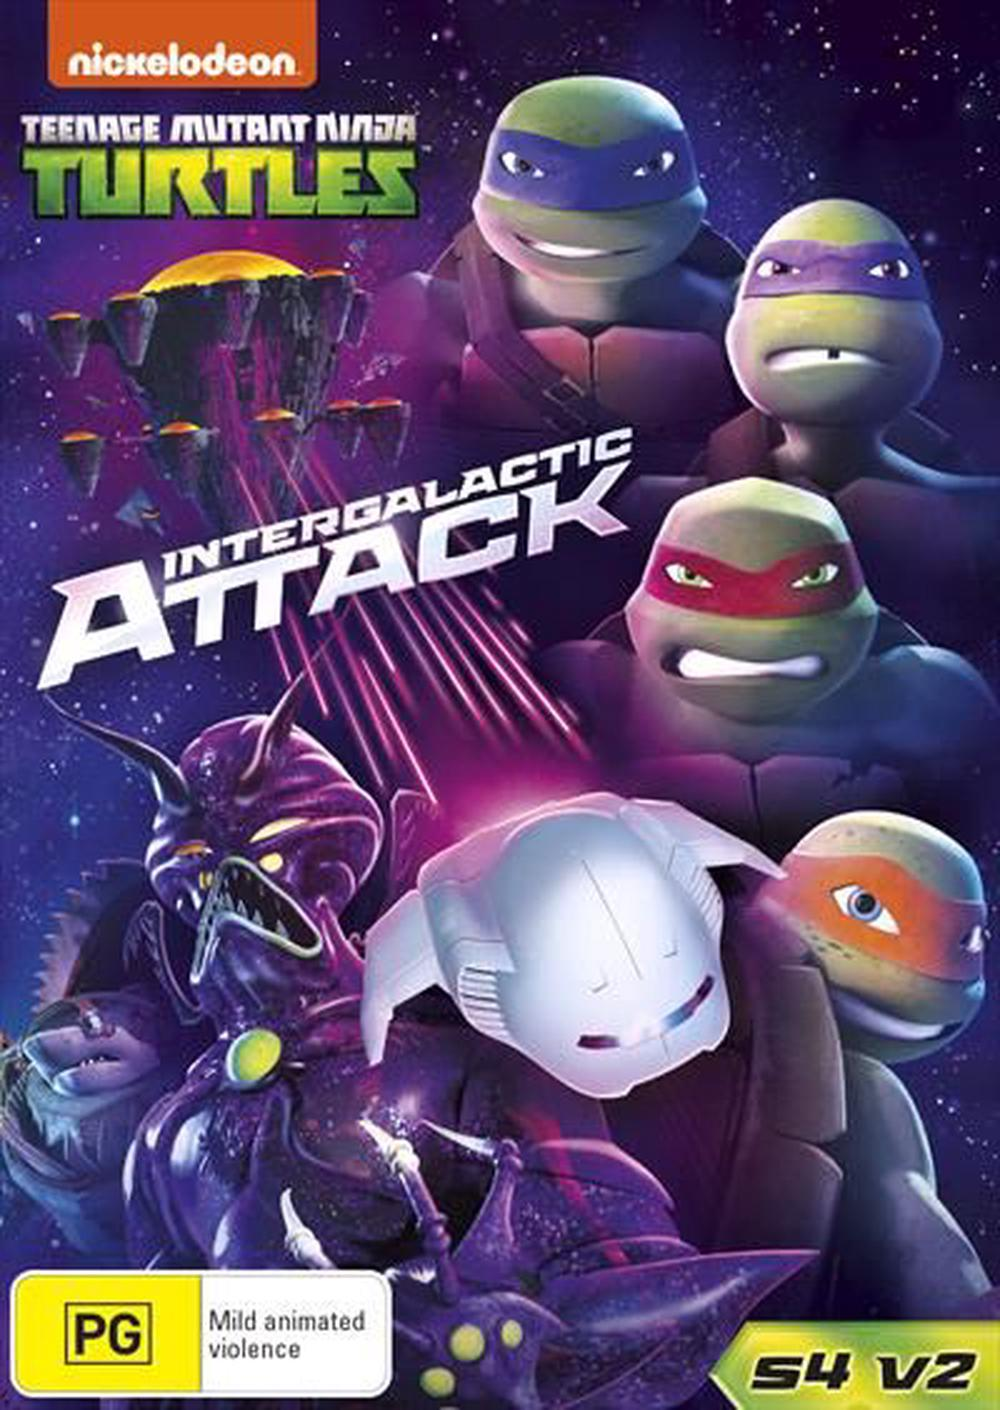 Teenage Mutant Ninja Turtles - Intergalactic Attack